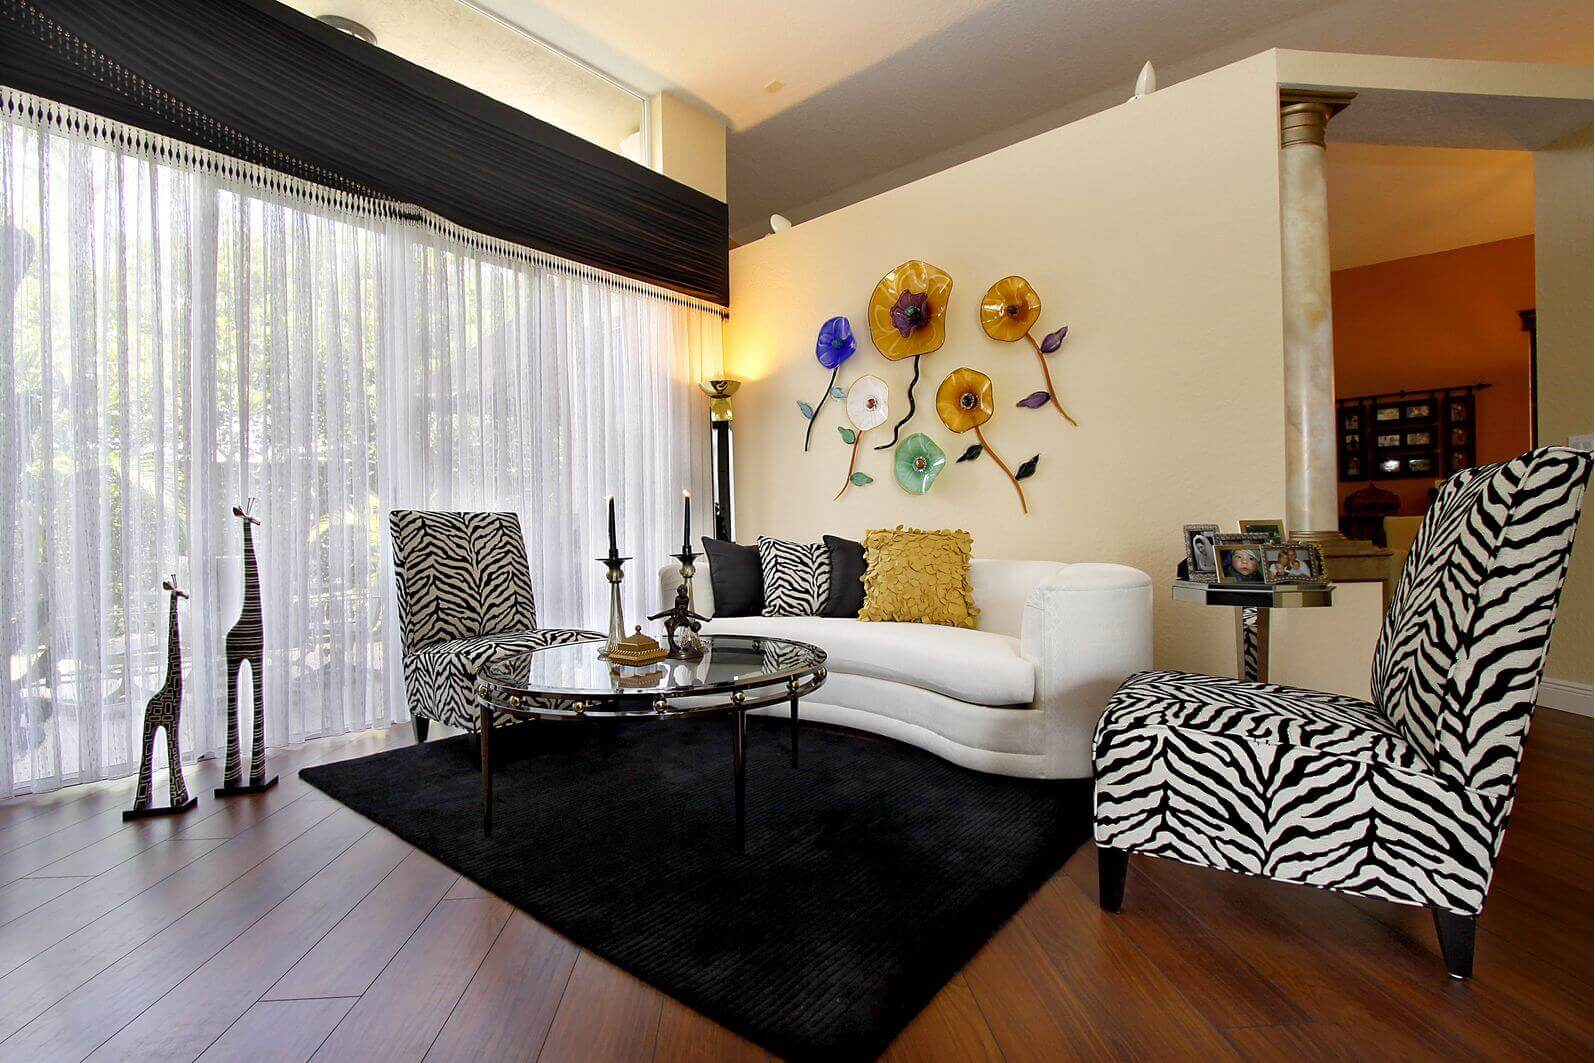 Zebra living room decor idea with chairs covered in zebra style fabric, zebra ornaments, black carpet over the dark brown floor, long and wide white drape, and a pillow with zebra motif.